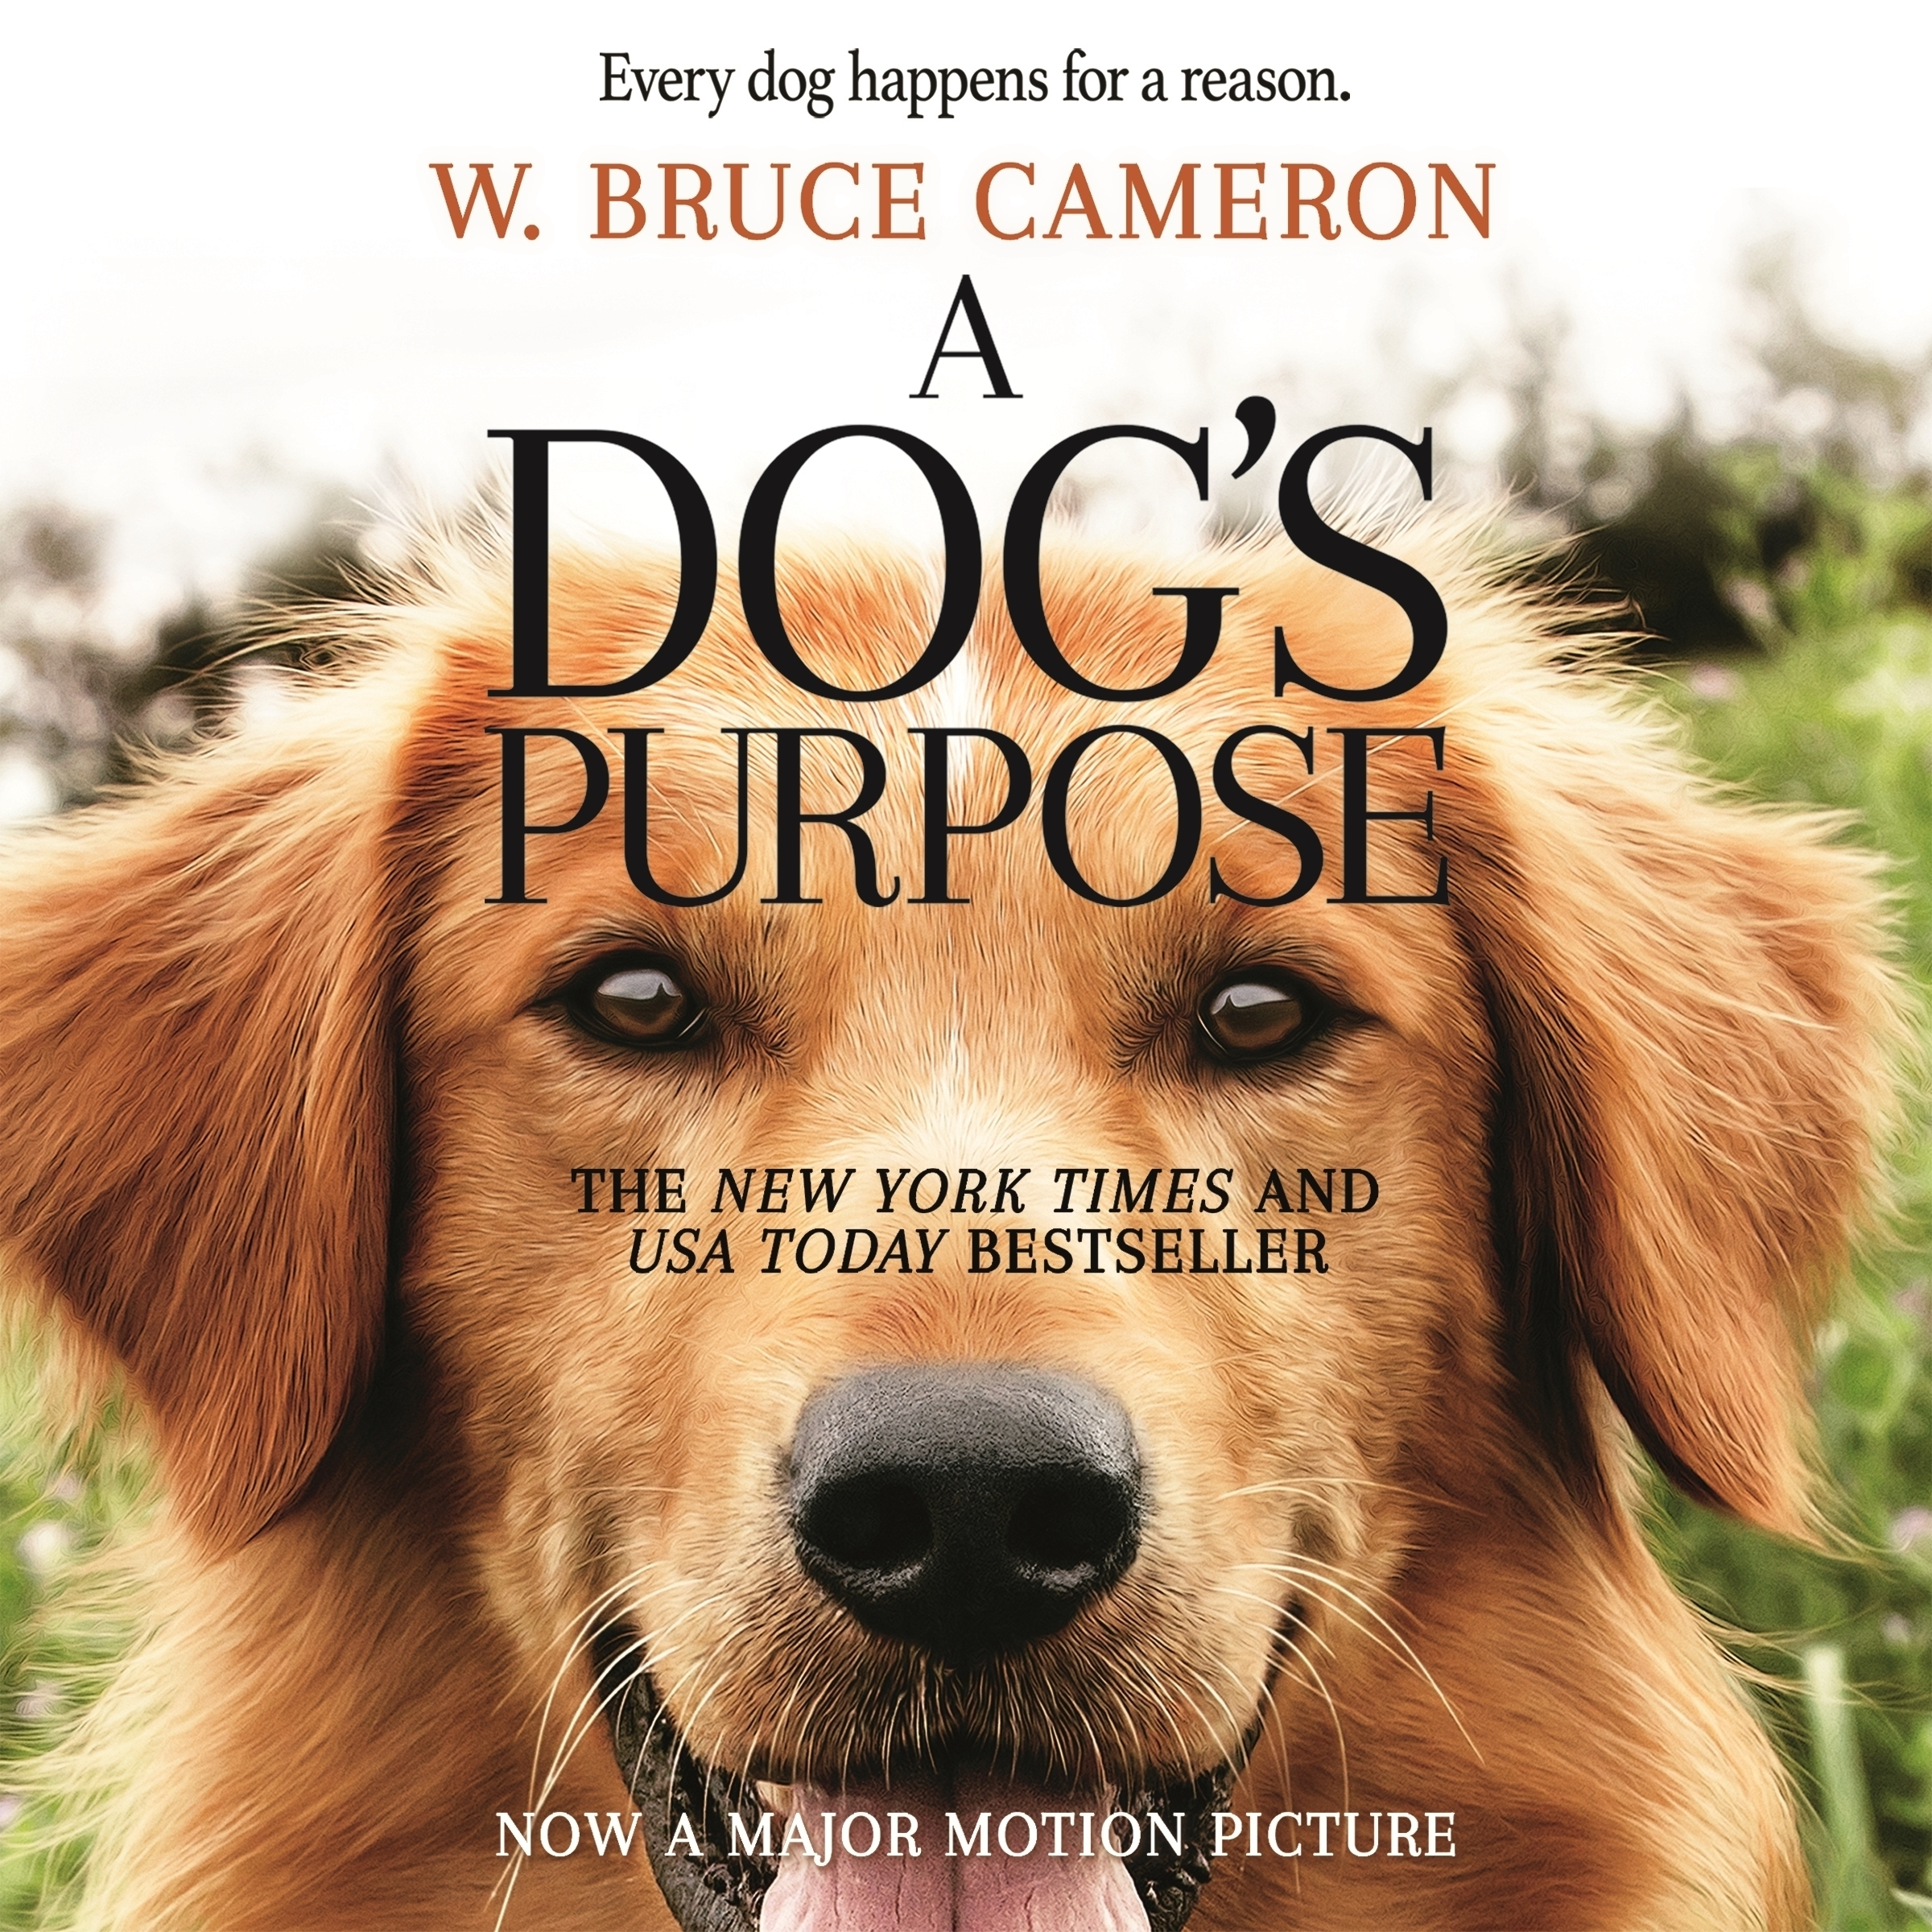 Printable A Dog's Purpose: A Novel for Humans Audiobook Cover Art